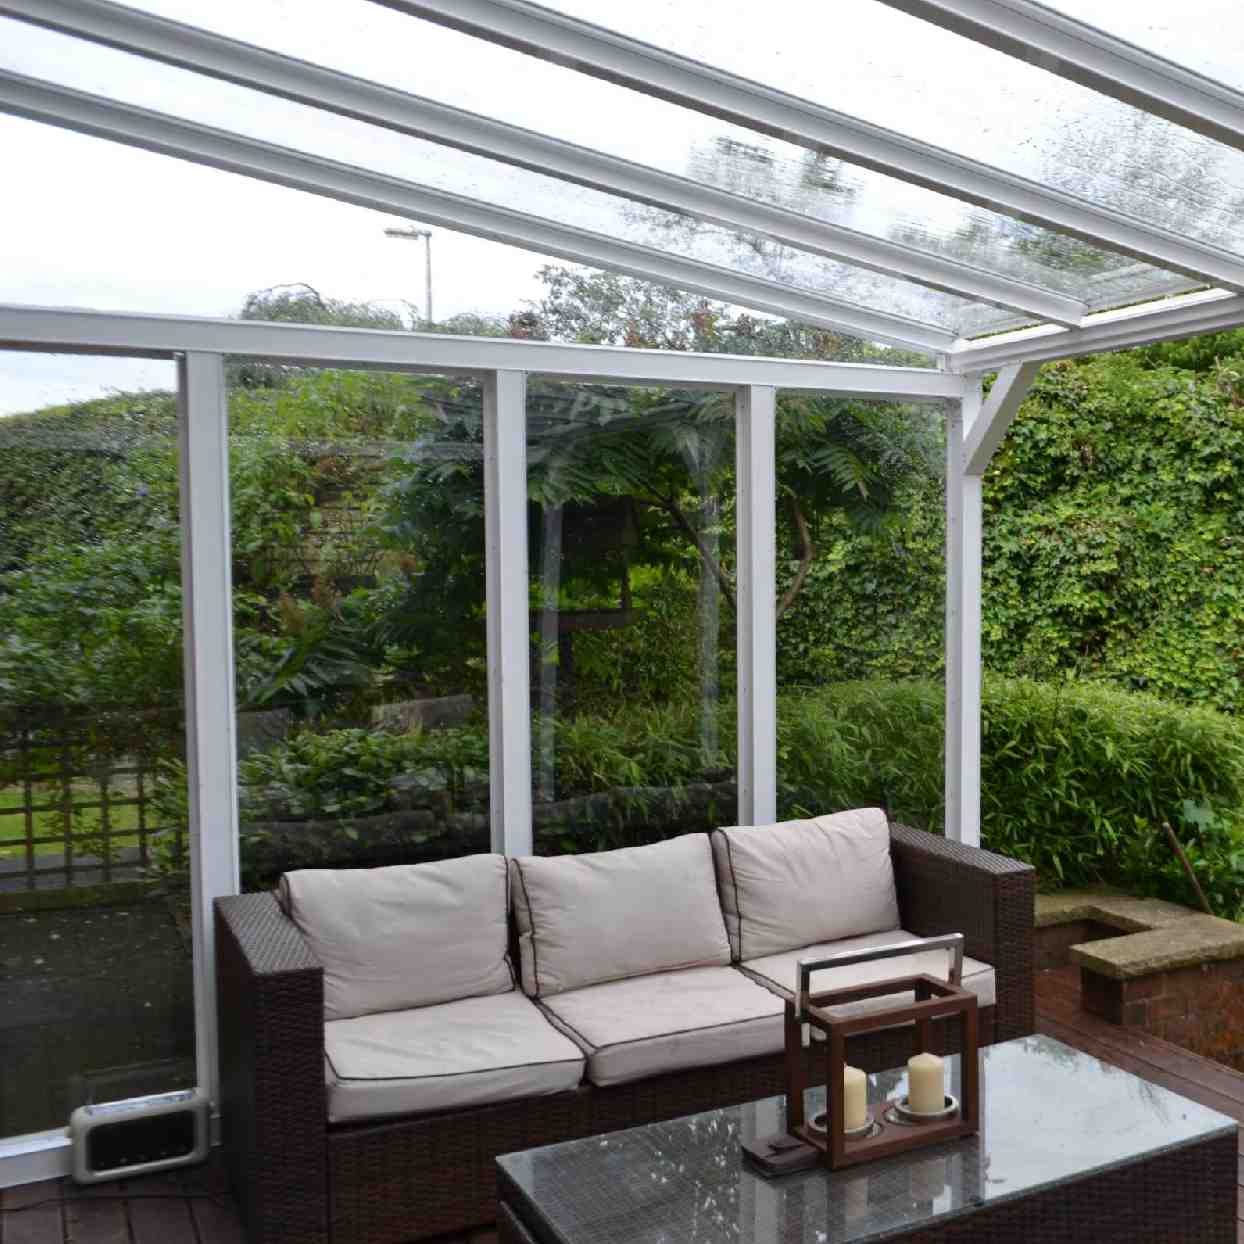 Buy Omega Verandah with 16mm Polycarbonate Glazing - 5.6m (W) x 4.0m (P), (3) Supporting Posts online today